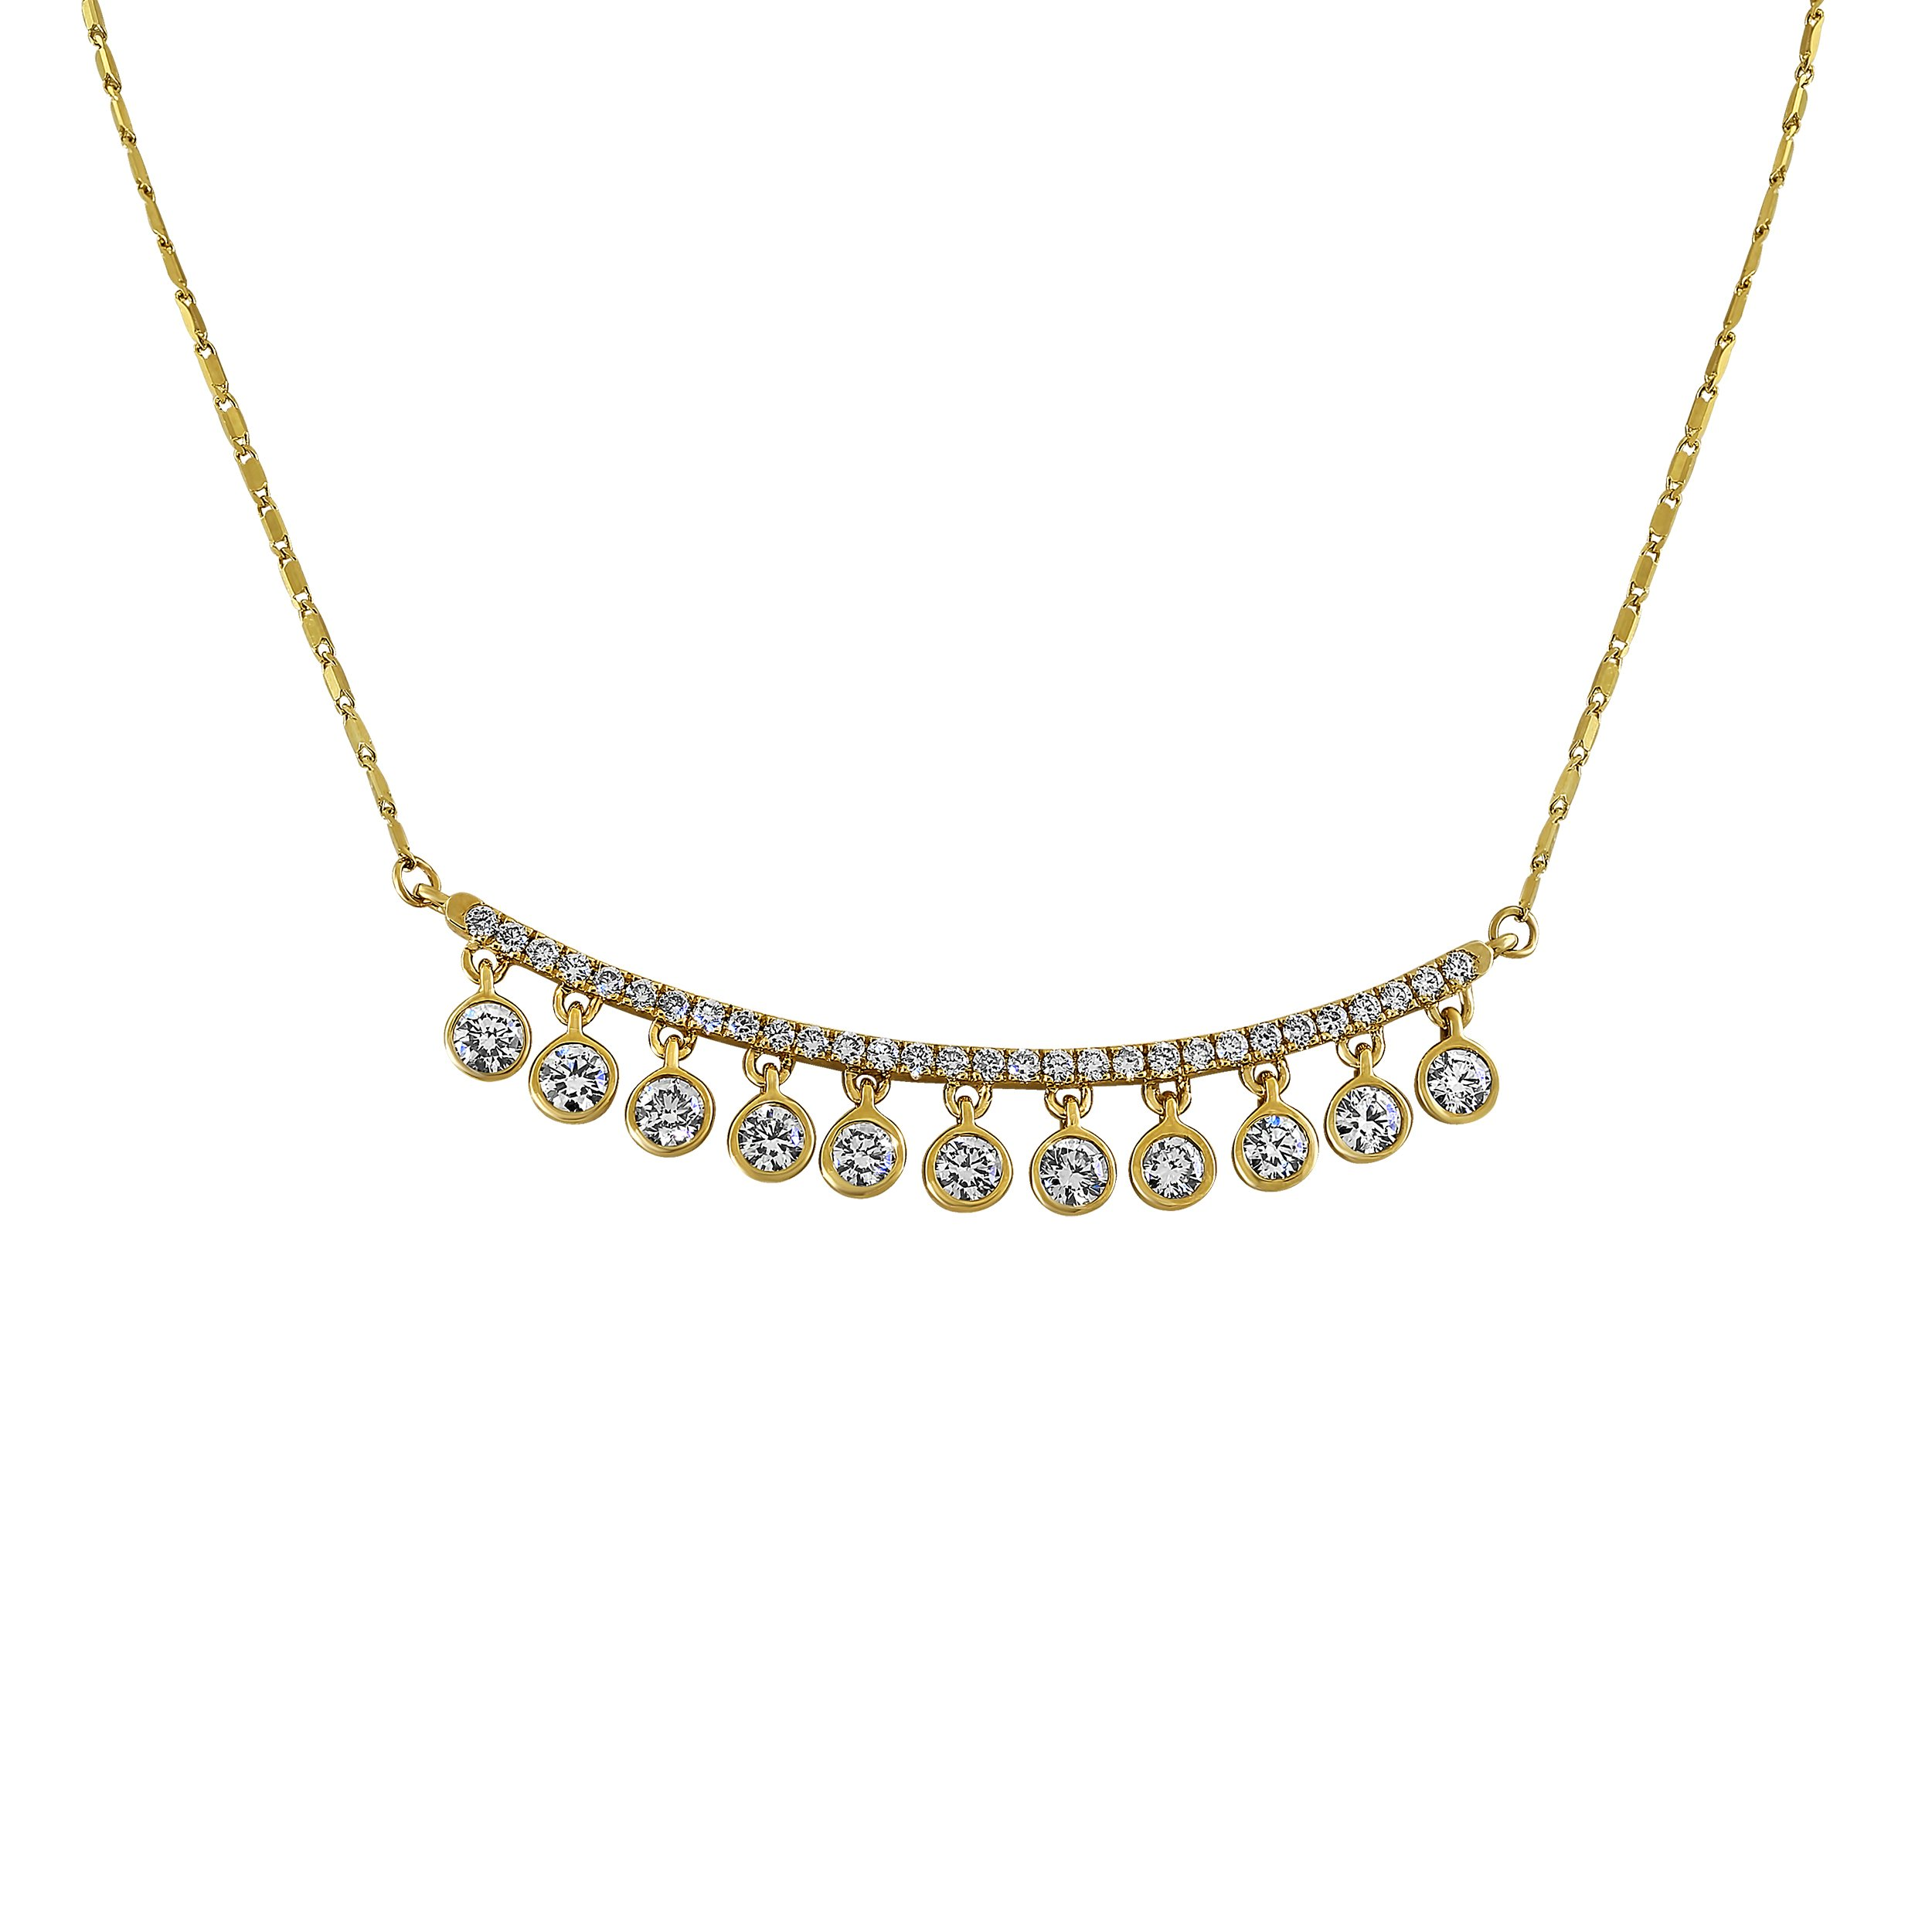 14k Yellow Gold Bar and Pear Shaped Drops Diamond Necklace (1 cttw, H-I Color, I1 Clarity) 16'' - 18''